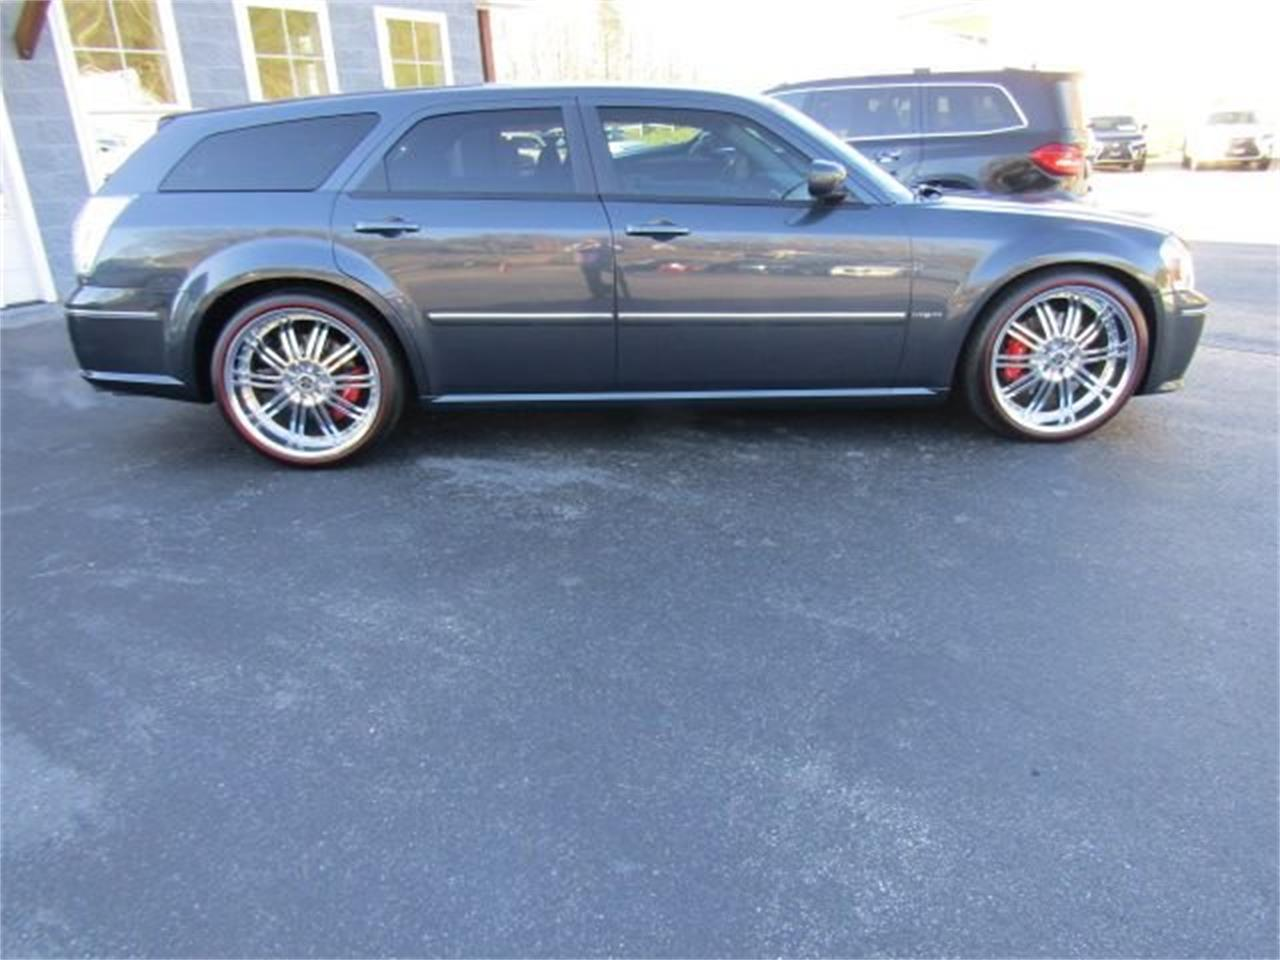 2007 Dodge Magnum (CC-1273606) for sale in Greensboro, North Carolina